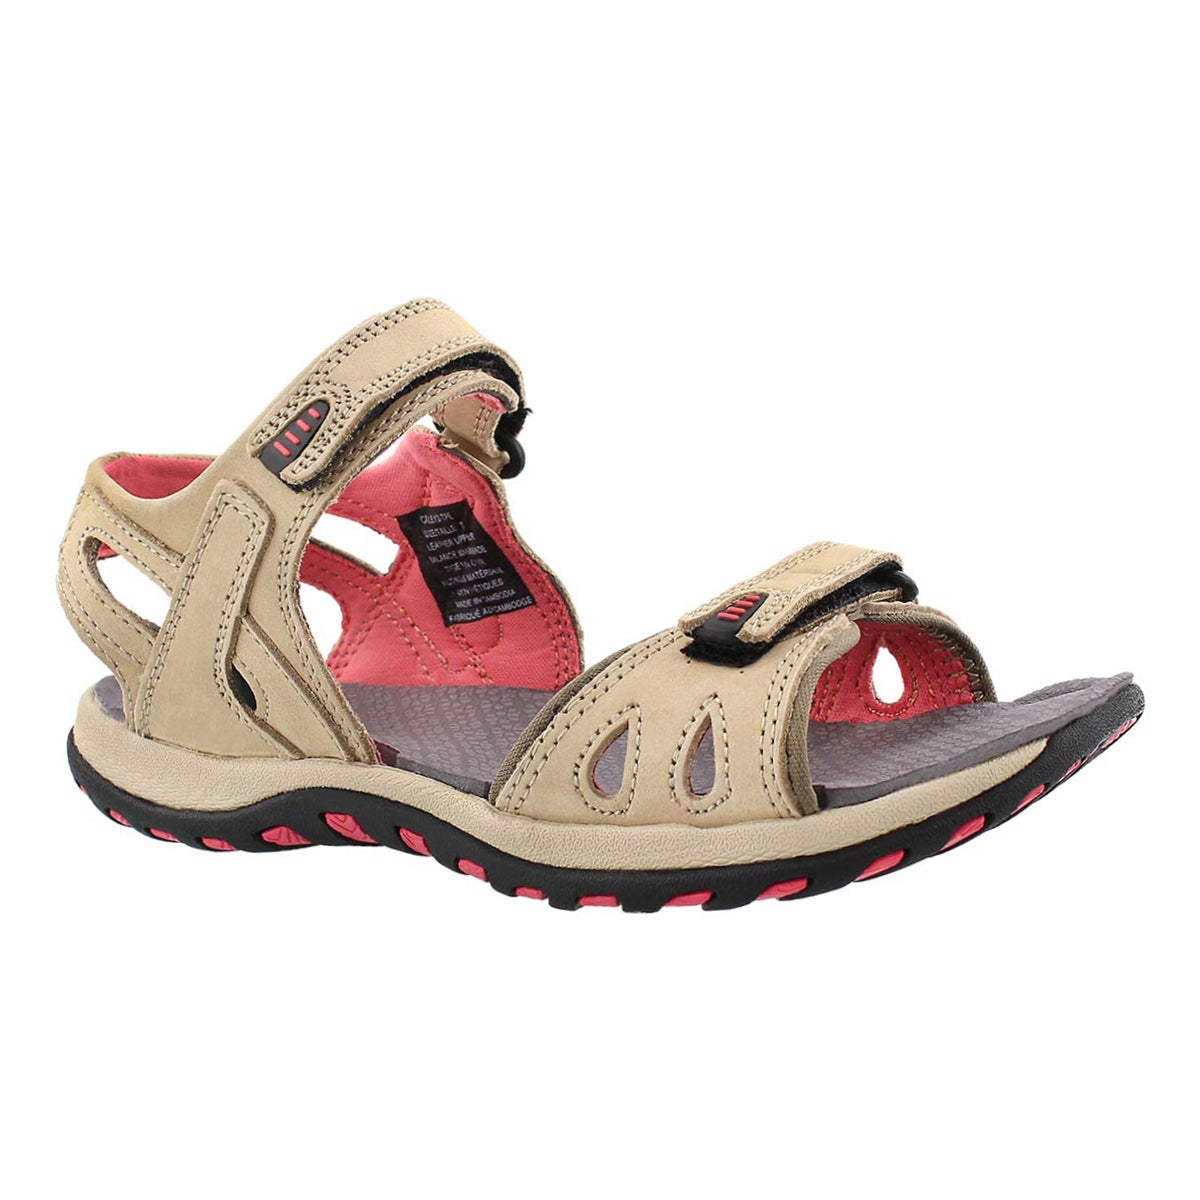 Lds Caley 2 taupe 3 strap sport sandal